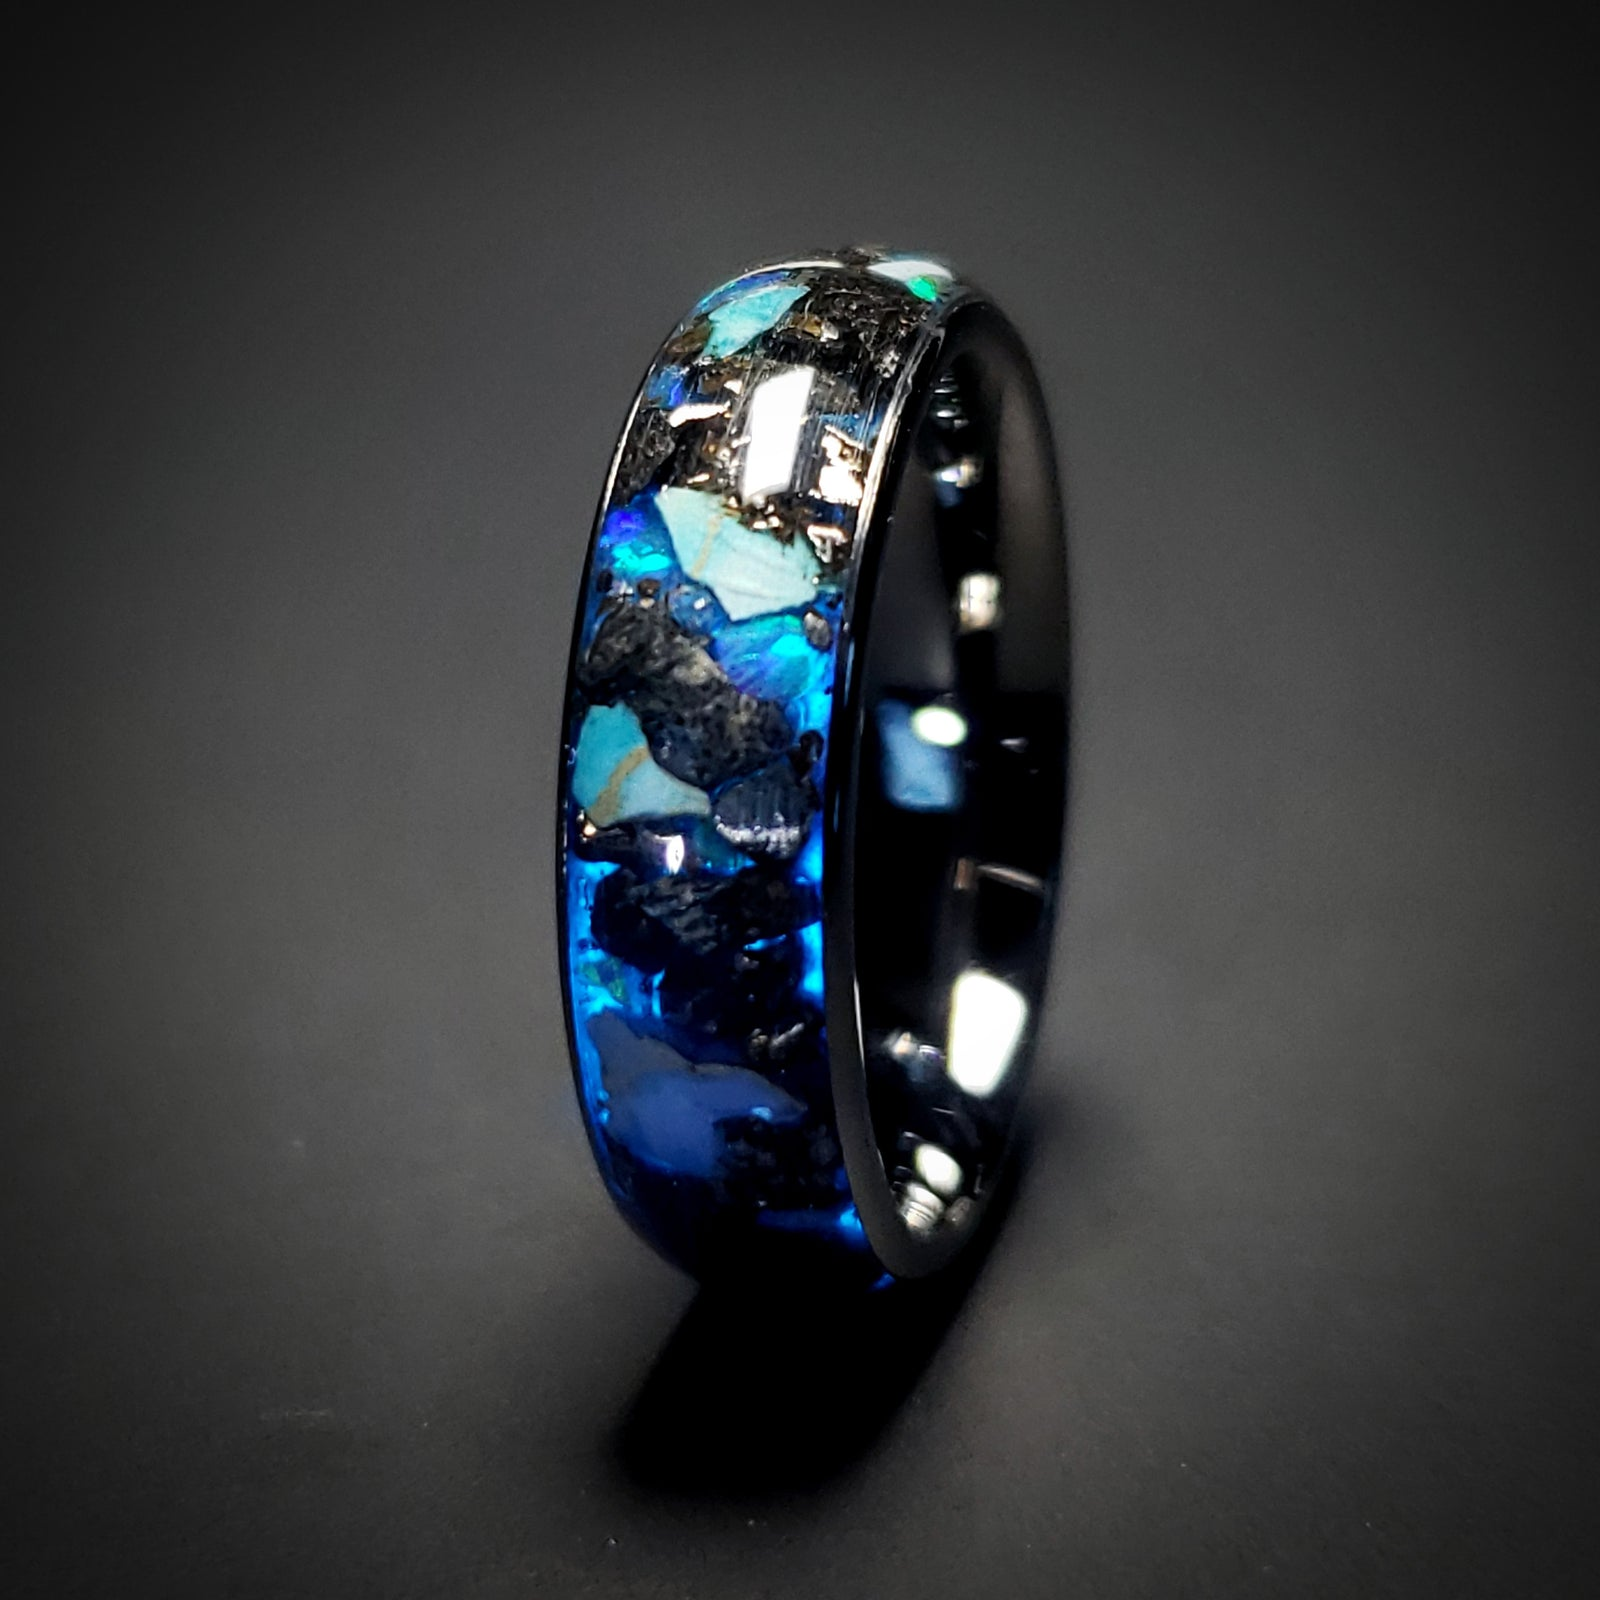 custom opal ring Womens ring or mens ring Black ceramic ring Black Fire Opal ring Artisan jewellery perfect for any occasion